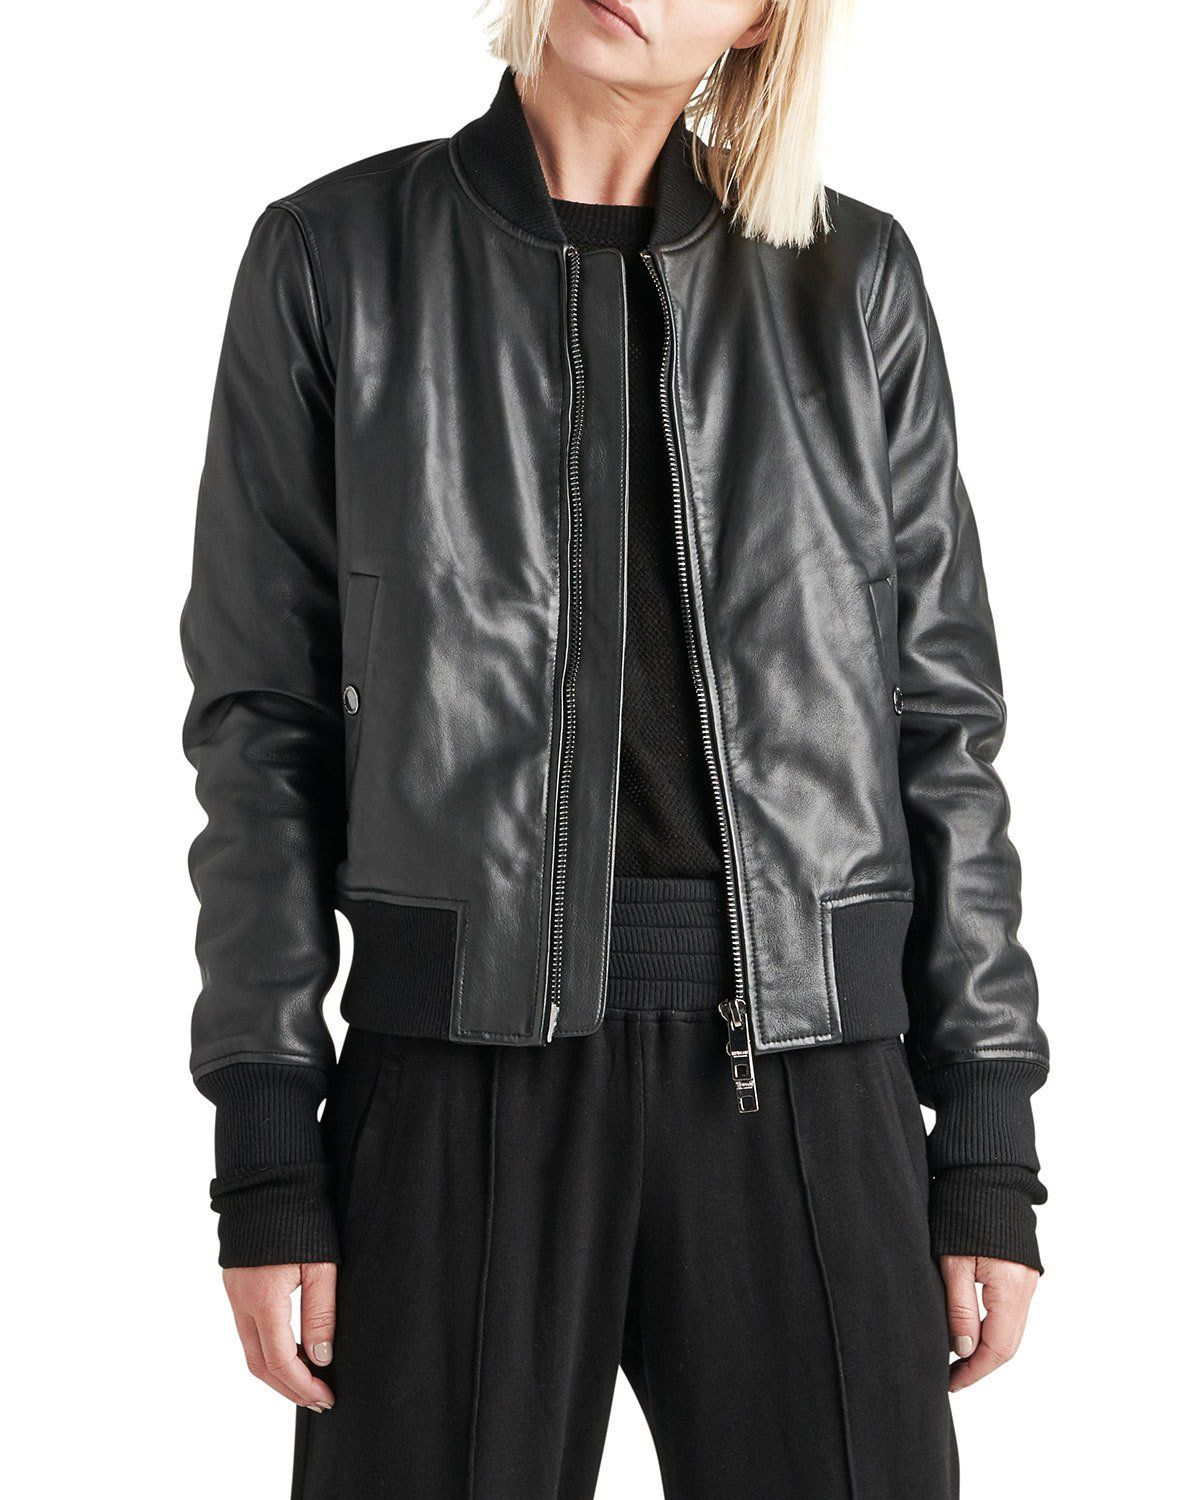 ZipFront Leather Bomber Jacket Bomber jacket, Jackets